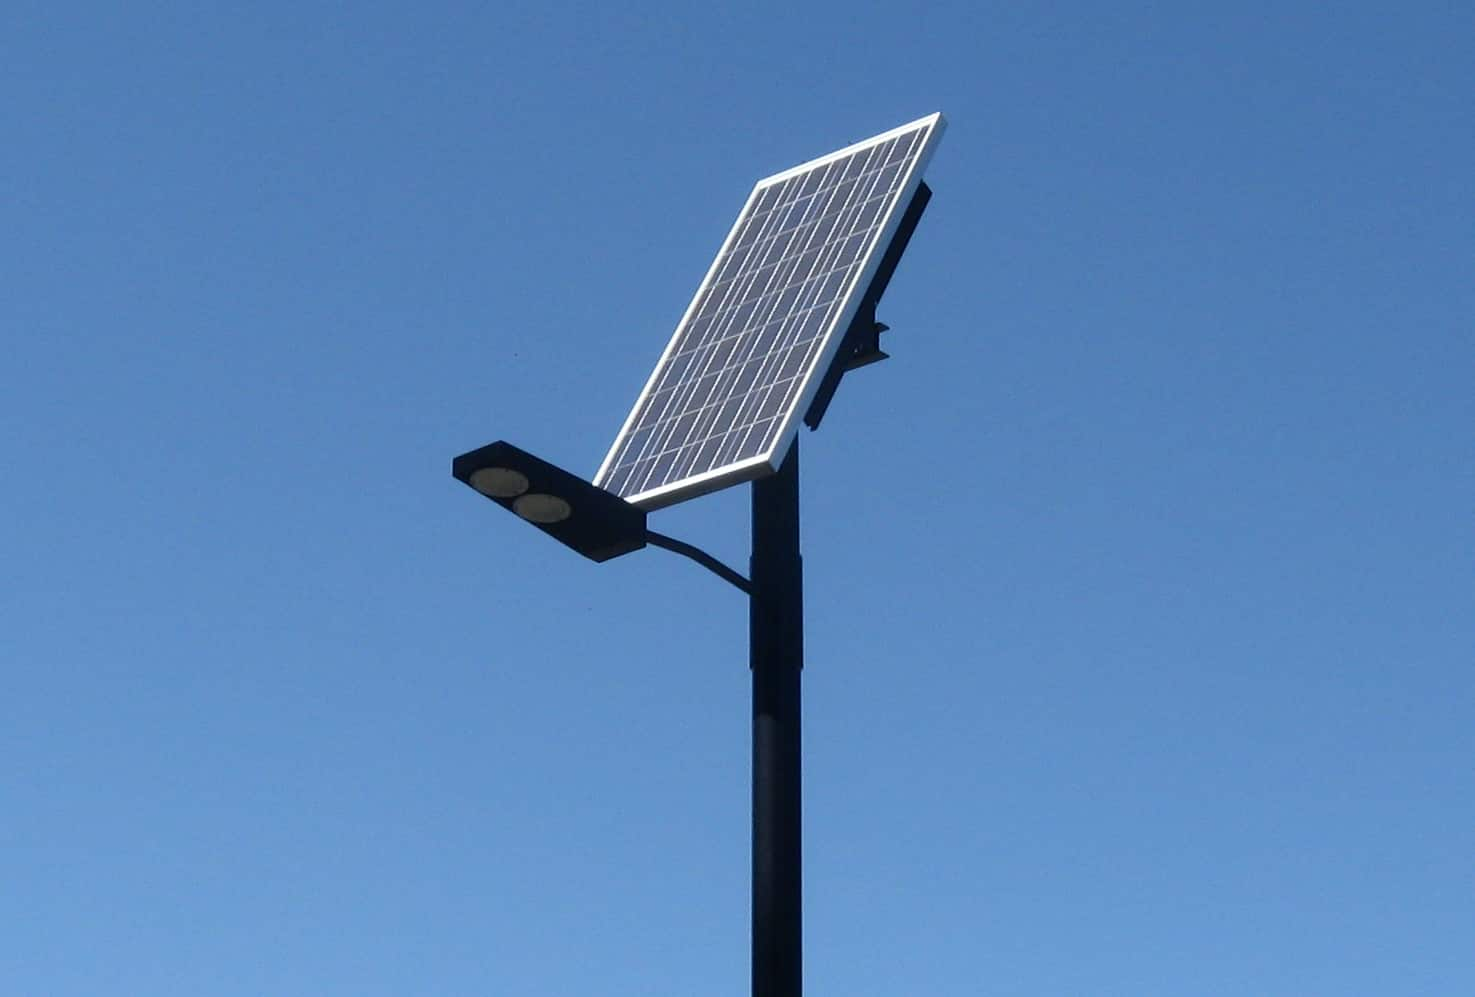 Solar Light Solar Street Lights- Types And Price Of Solar Street Lights